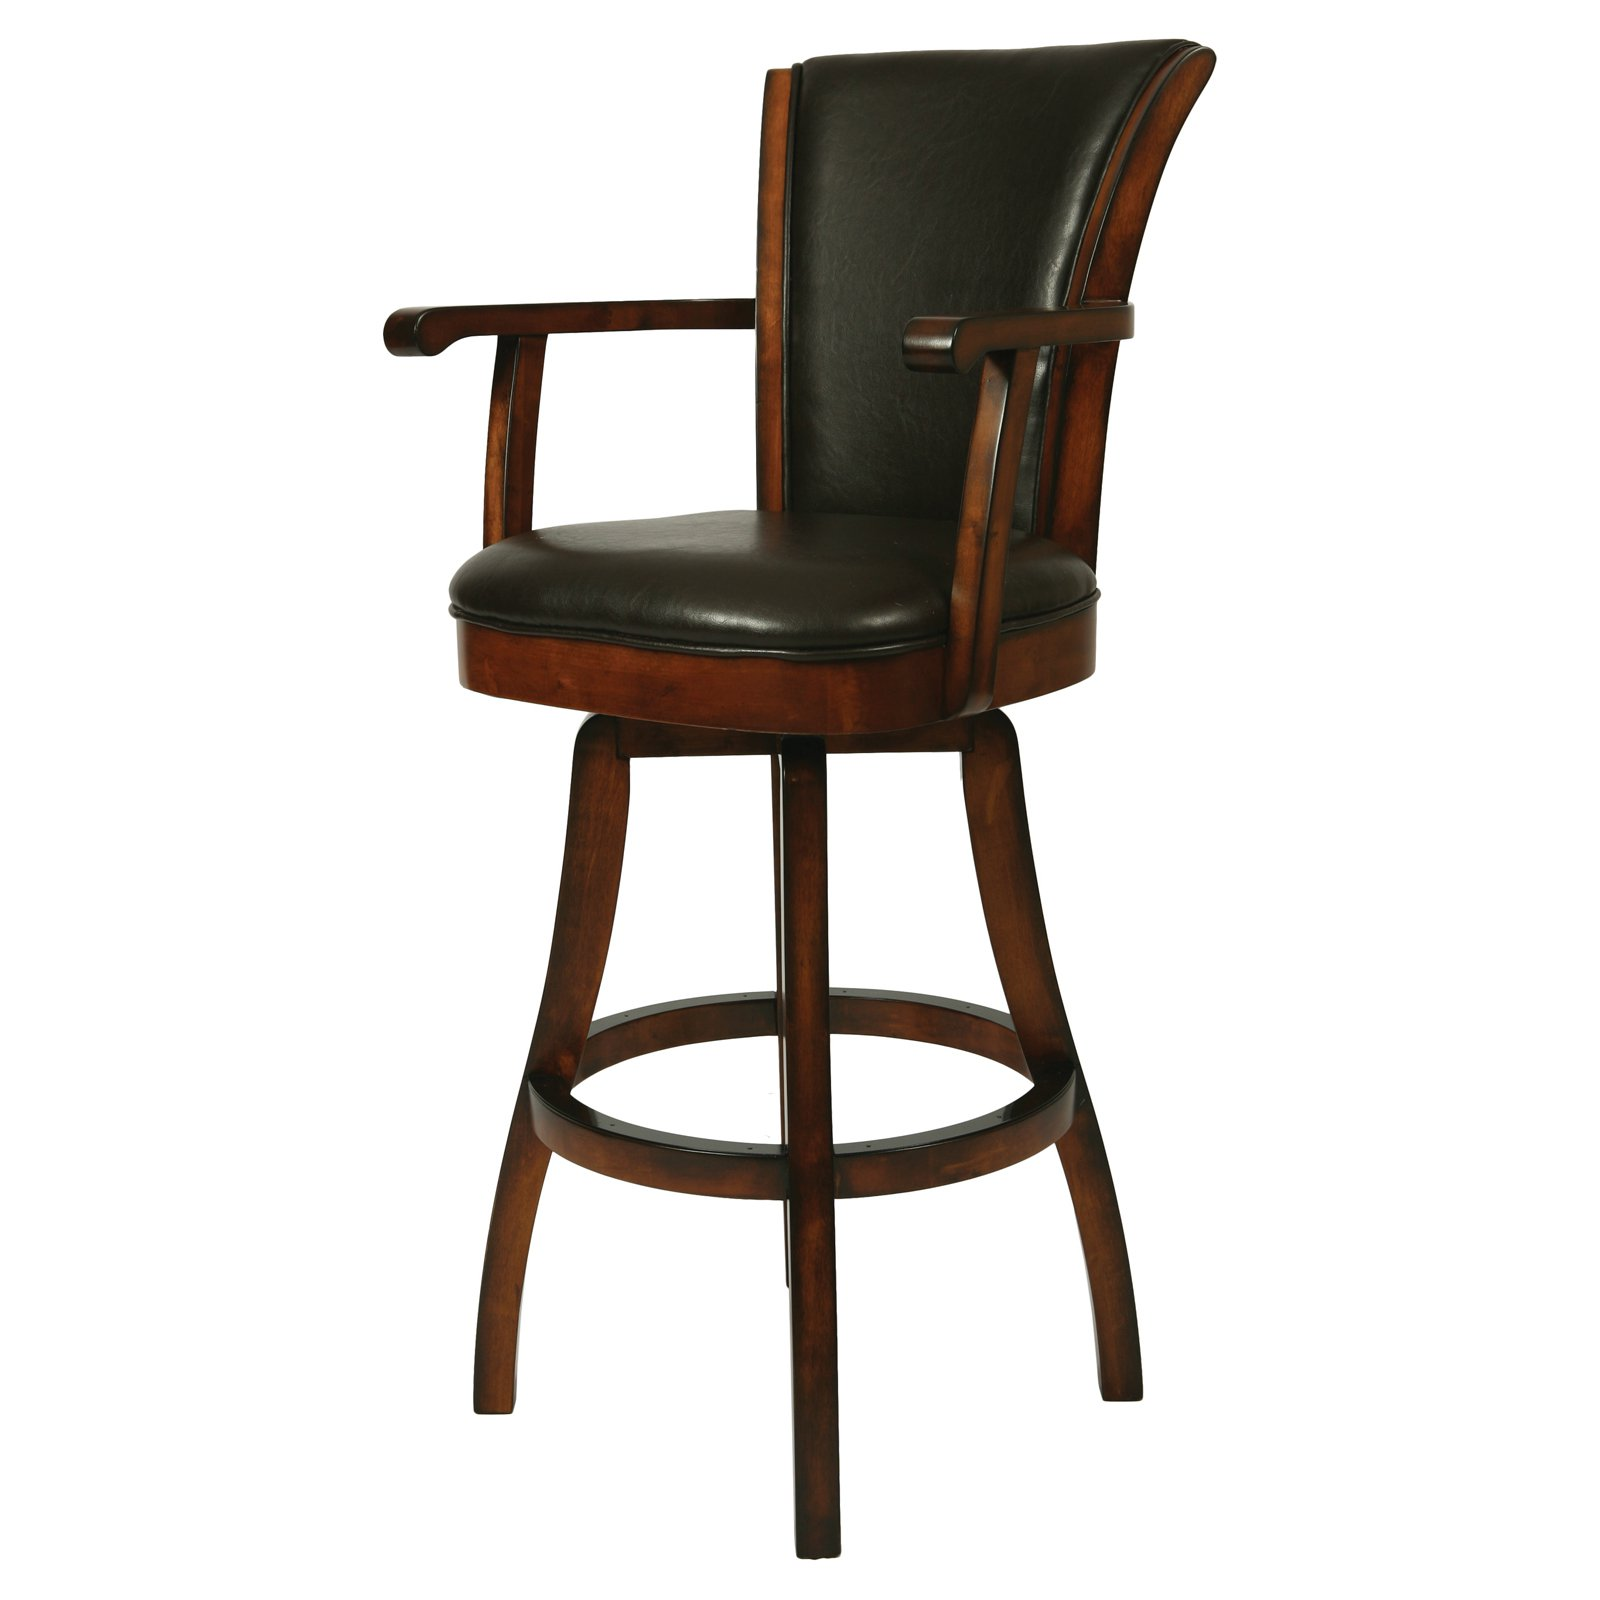 Enjoyable Impacterra Glenwood Swivel Bar Stool With Arms Russet Cordovan Machost Co Dining Chair Design Ideas Machostcouk